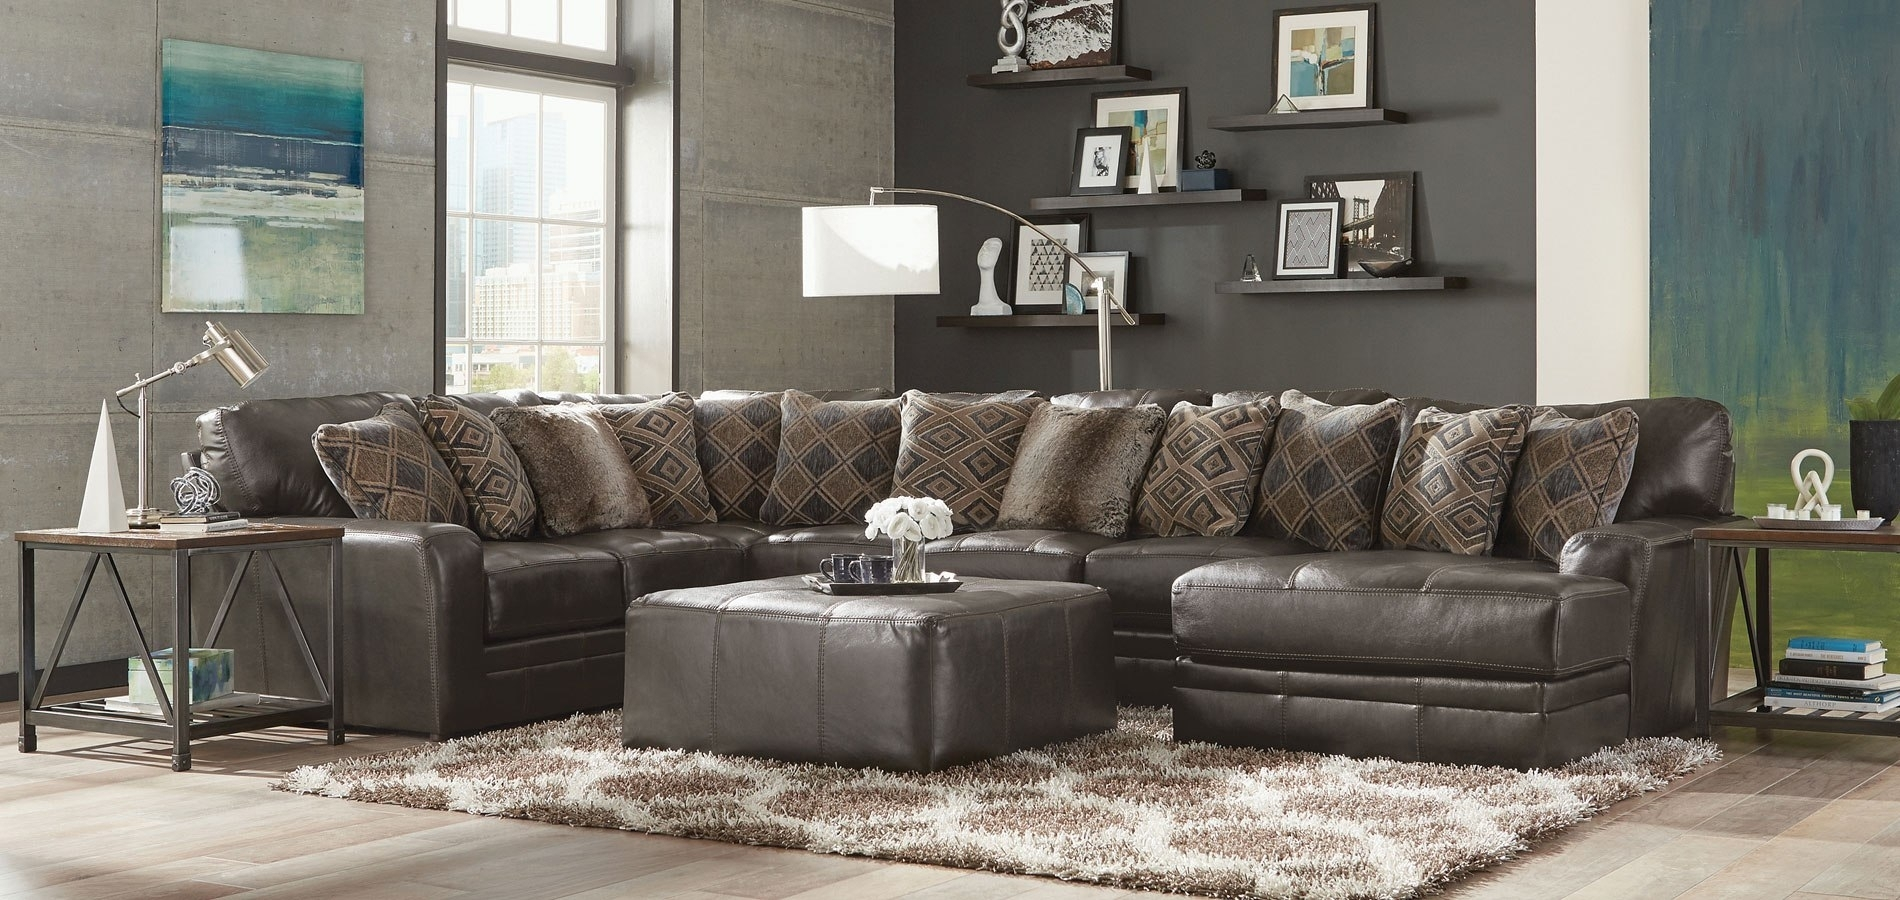 Denali Modular Sectional (Steel) Jackson Furniture   Furniture Cart for Denali Light Grey 6 Piece Reclining Sectionals With 2 Power Headrests (Image 11 of 30)